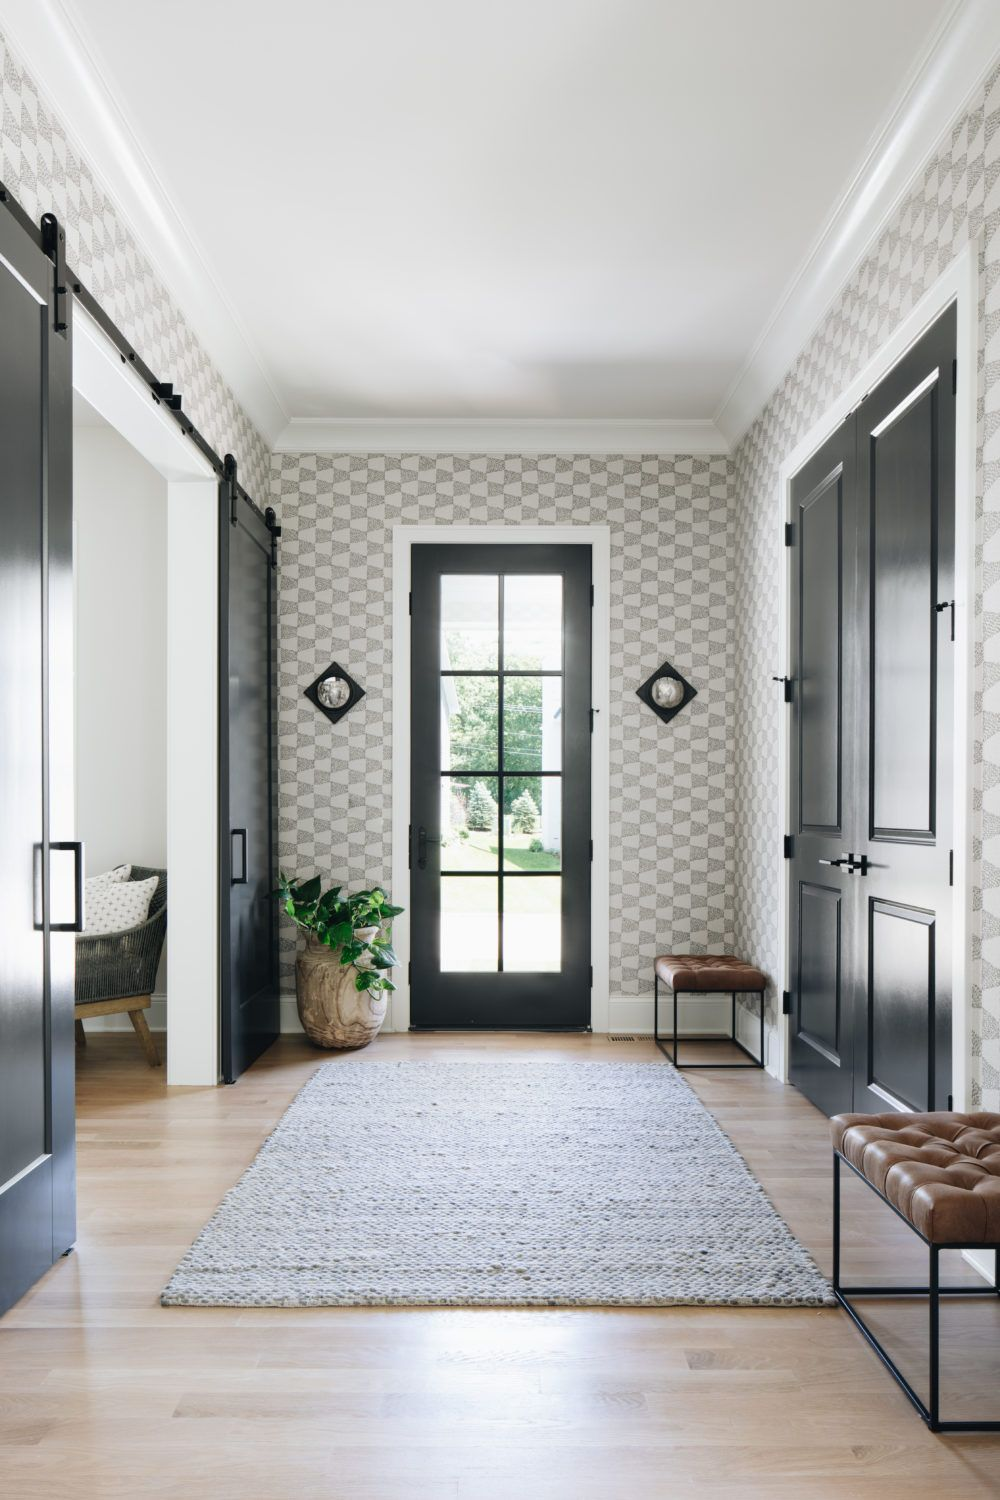 Timber Trails Refined Rustic The Tile Shop Blog Benjamin Moore Wrought Iron Home Dream House